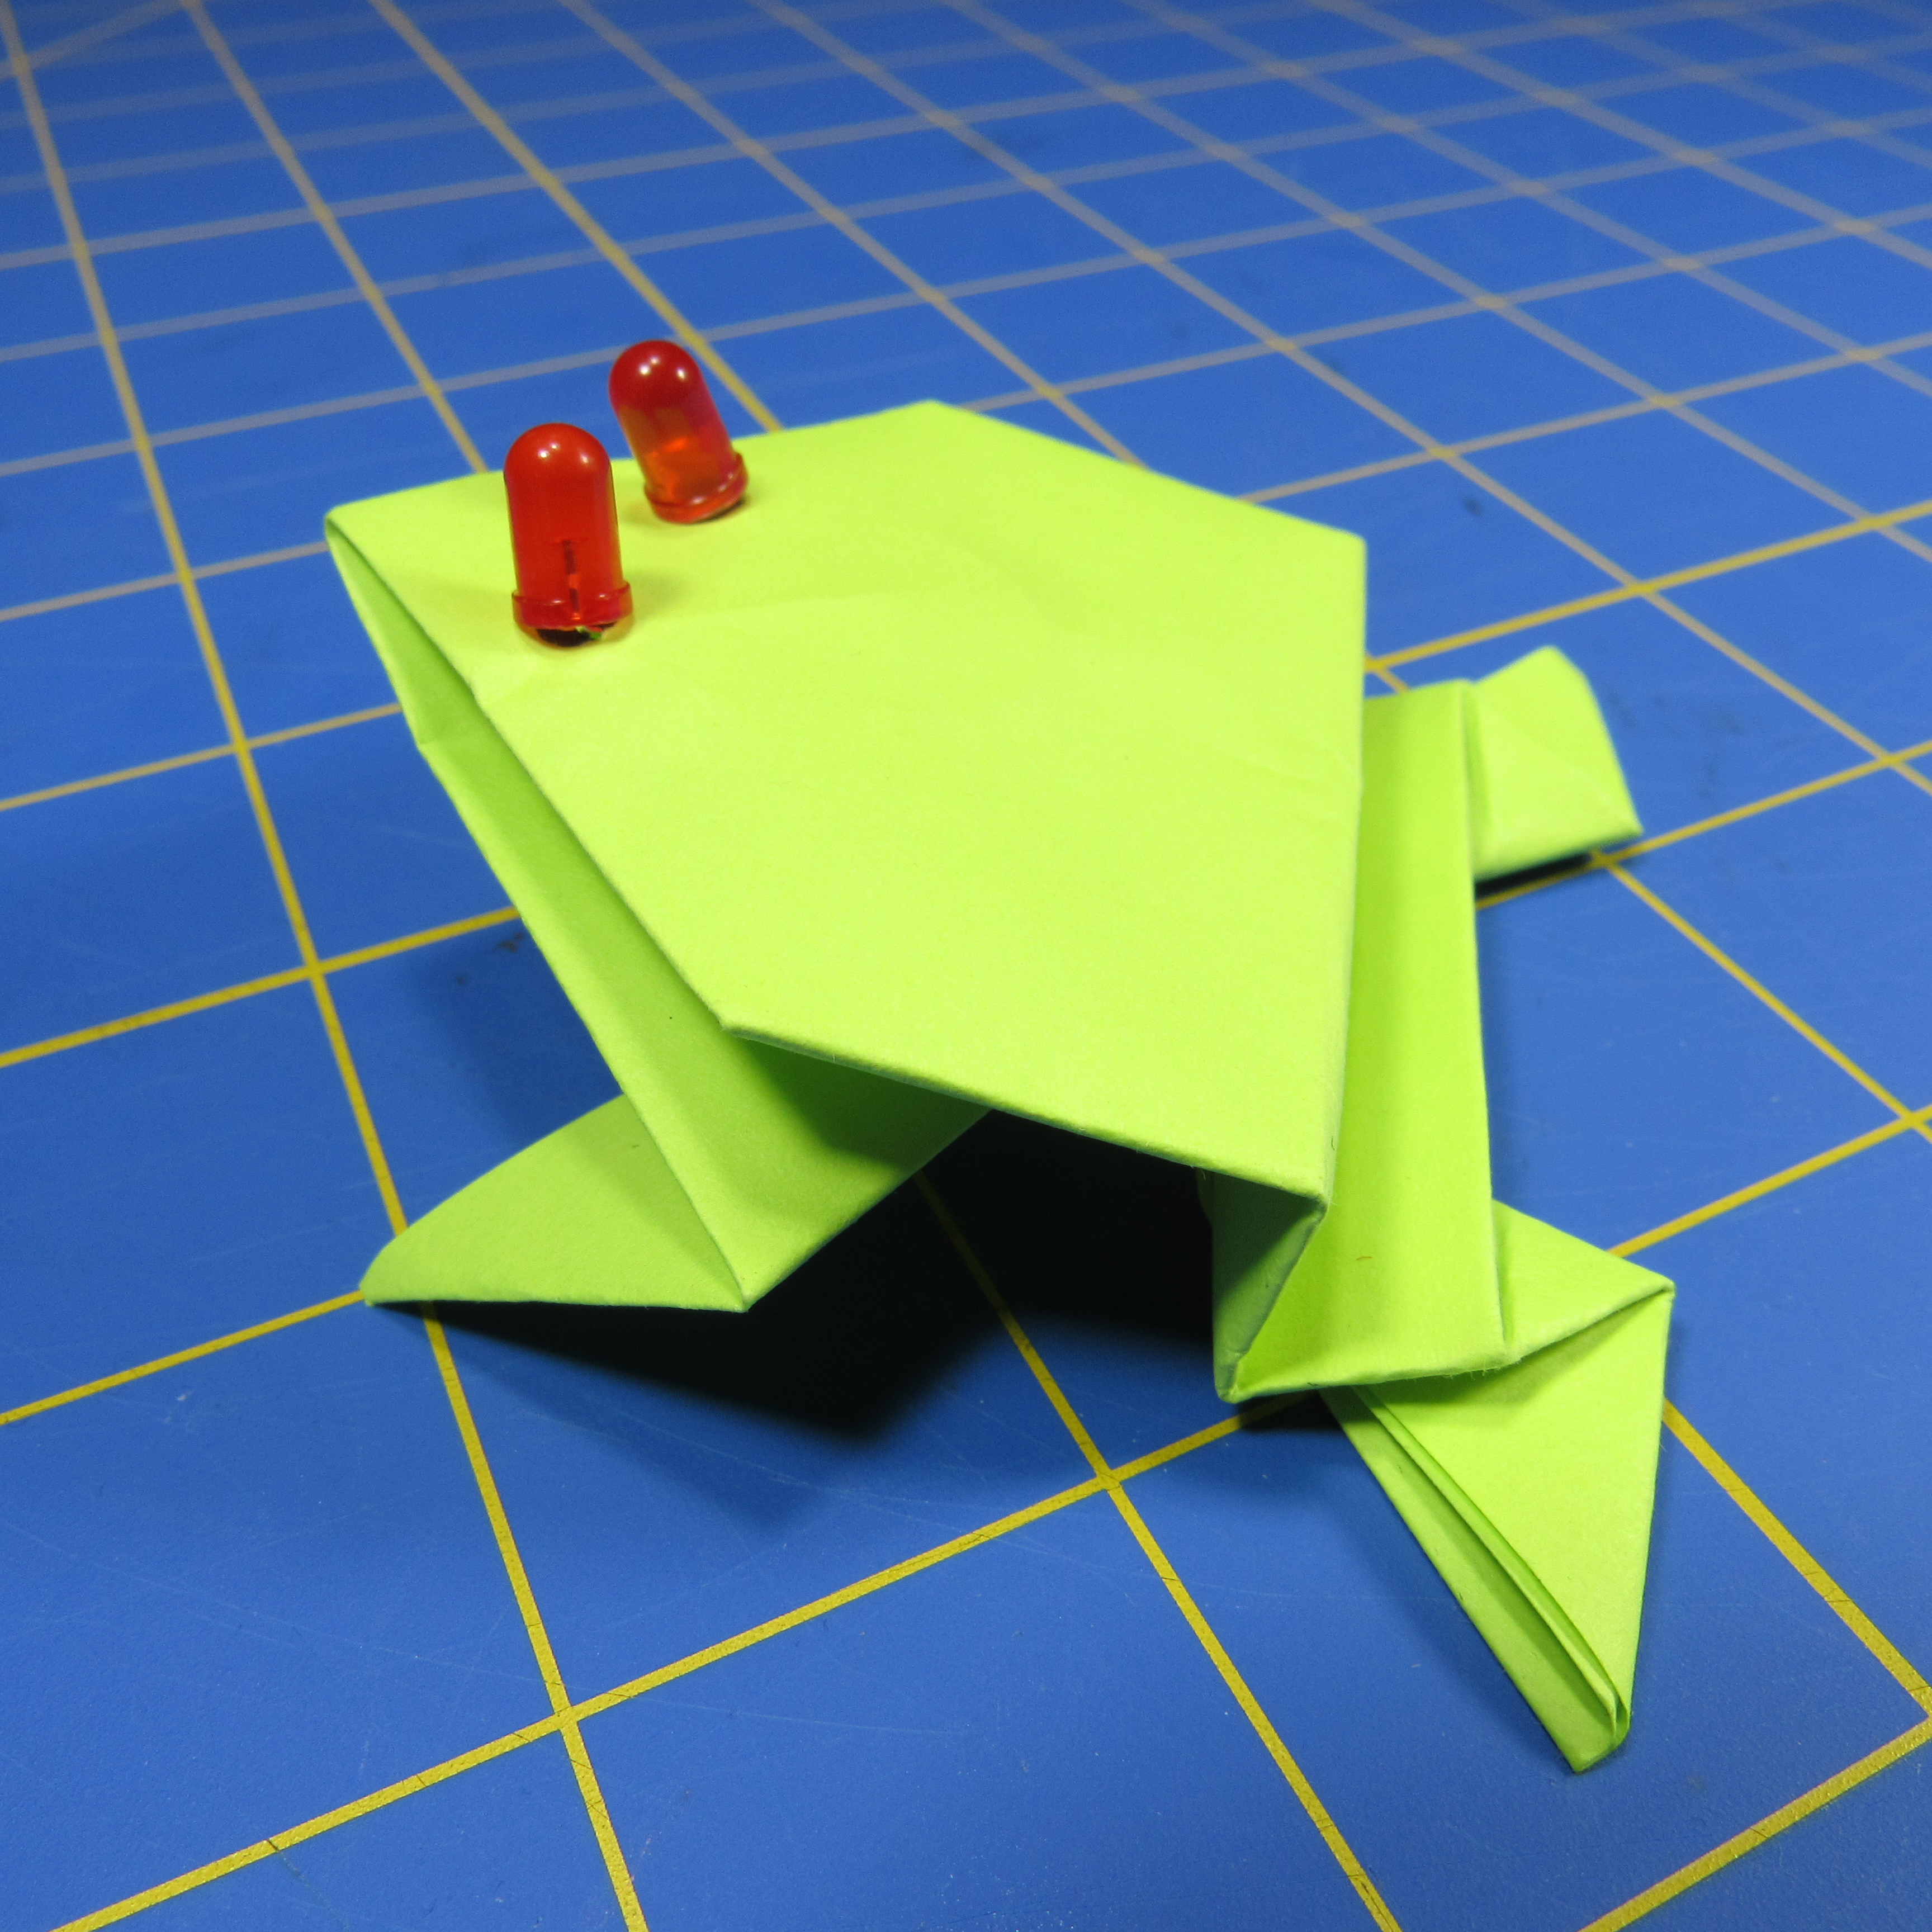 Origami Jumping Frog Instructions: www.Origami-Fun.com - YouTube | 3456x3456